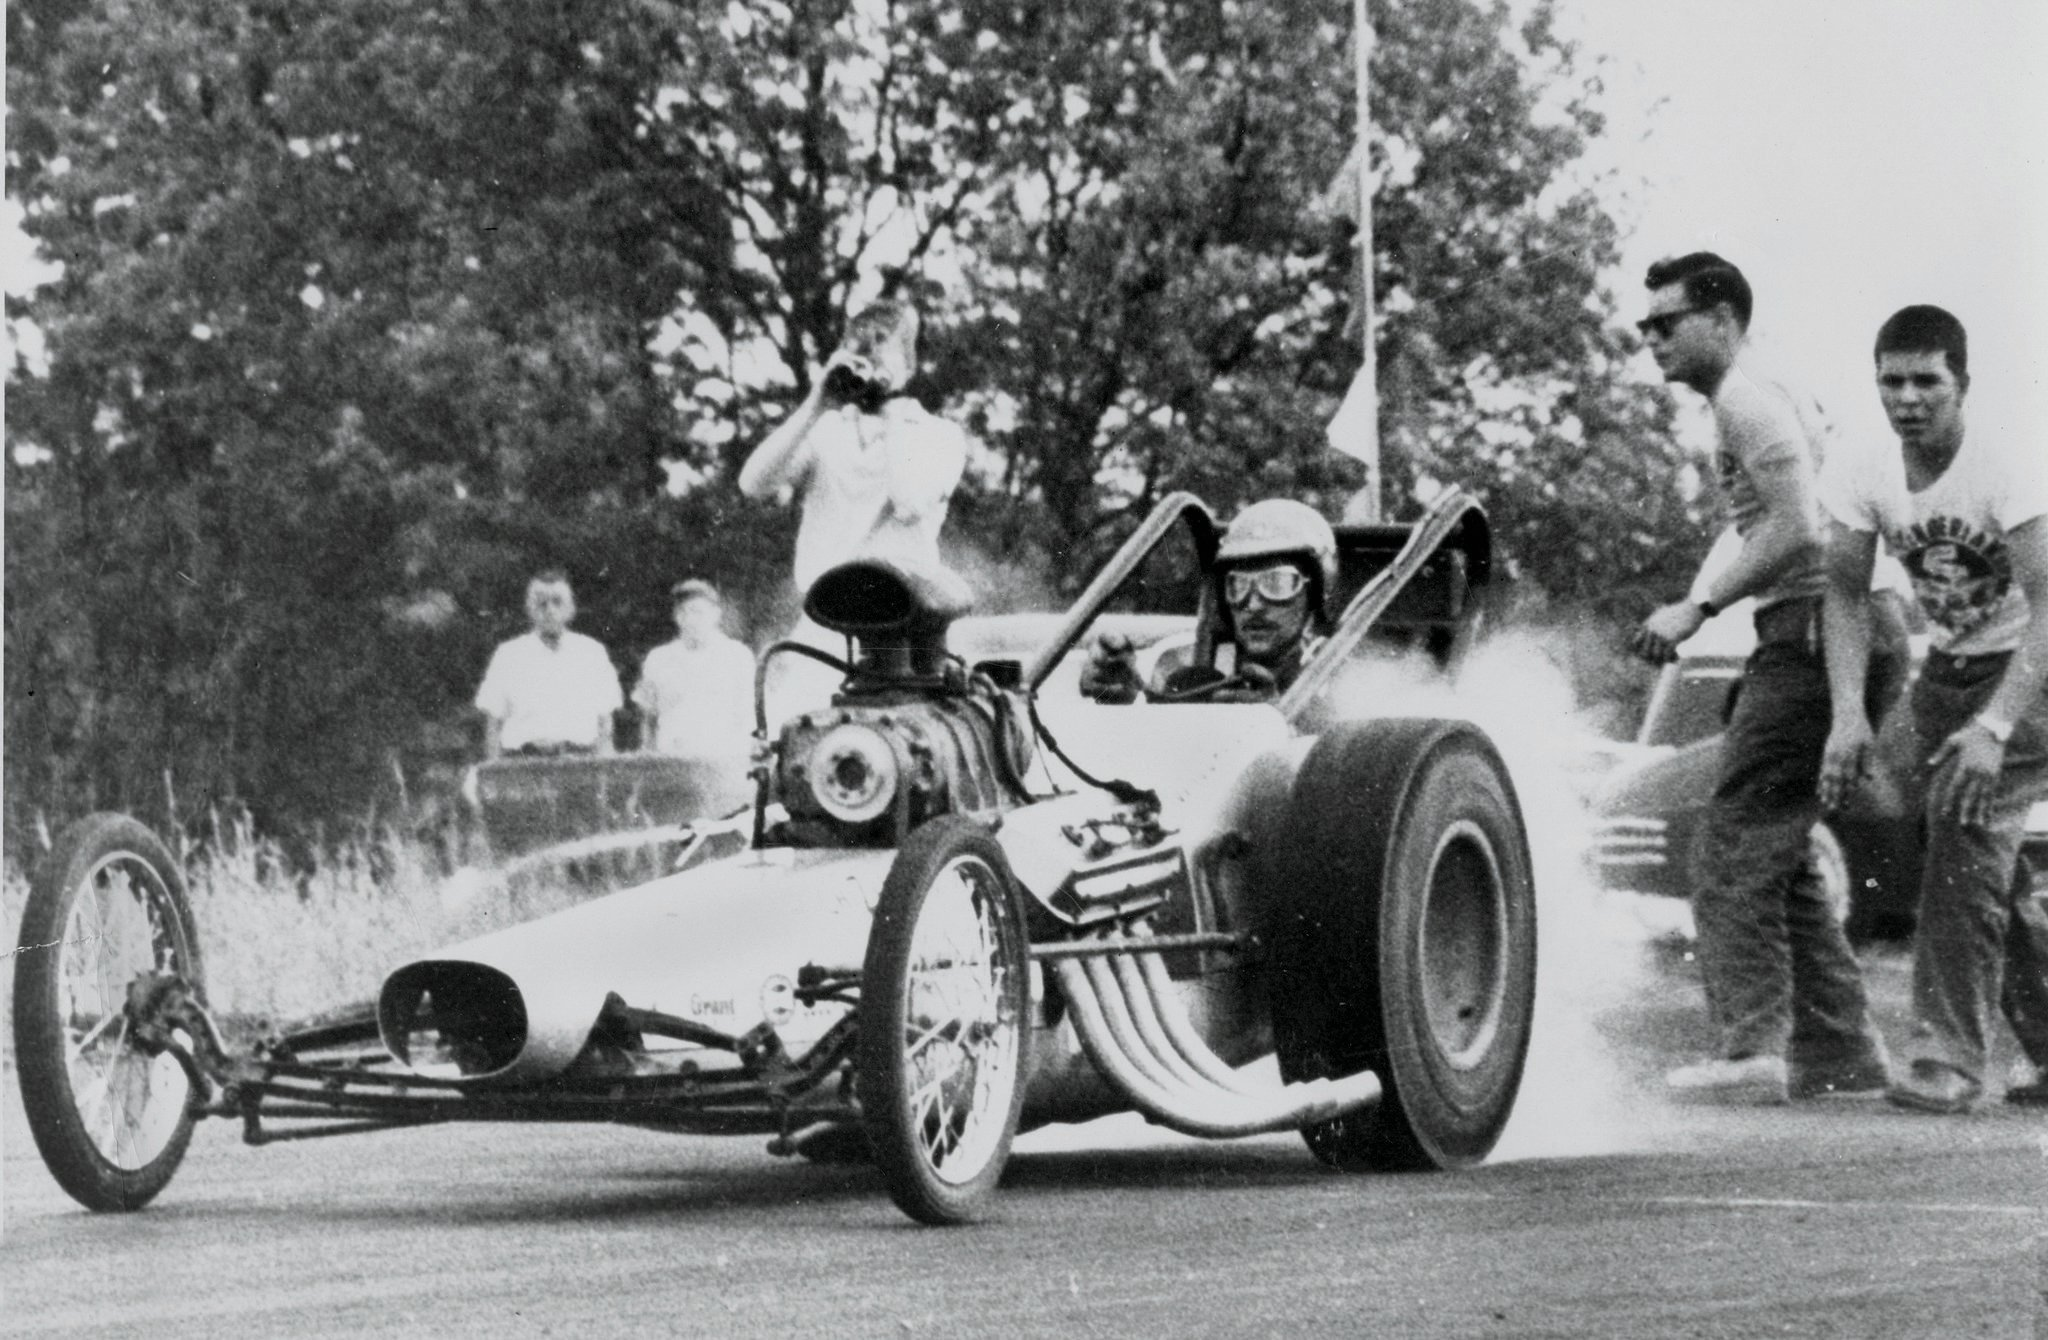 In late 1957 the Greek and his new partner, Don Maynard, built a car using pre-bent tubing from Scotty Fenn's Chassis Research. They ran it for about five years, lengthening the wheelbase more than once. Some say this photo was taken at Alton, Illinois, on the 204-mph pass of April 1960.